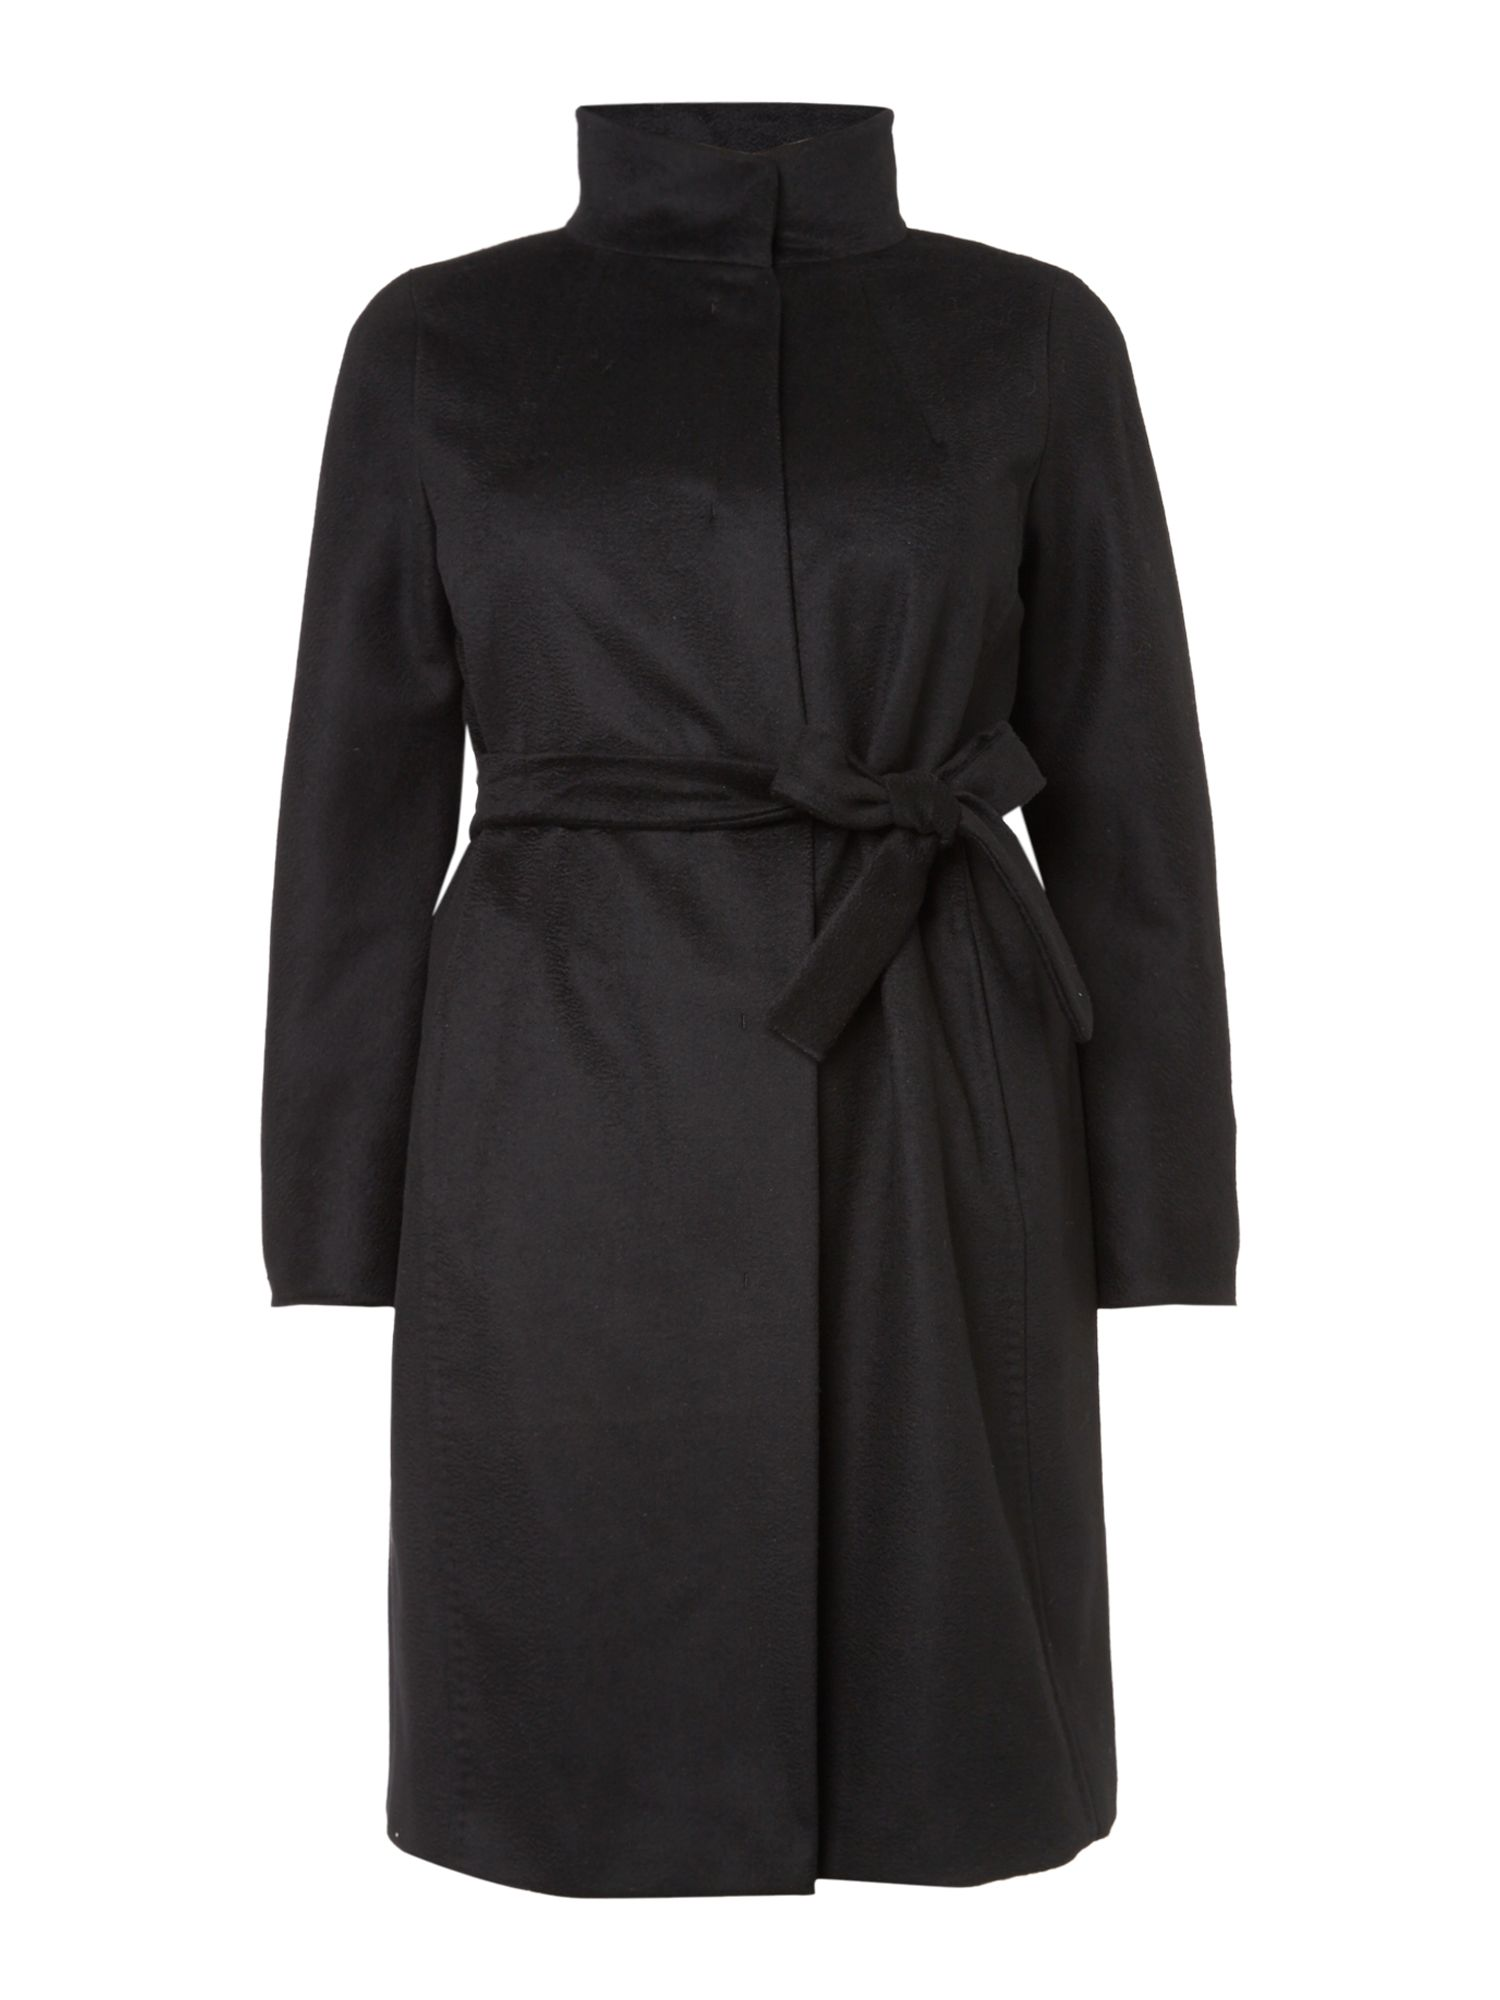 Marina Rinaldi Tesoro funnel neck belted wool coat, Black